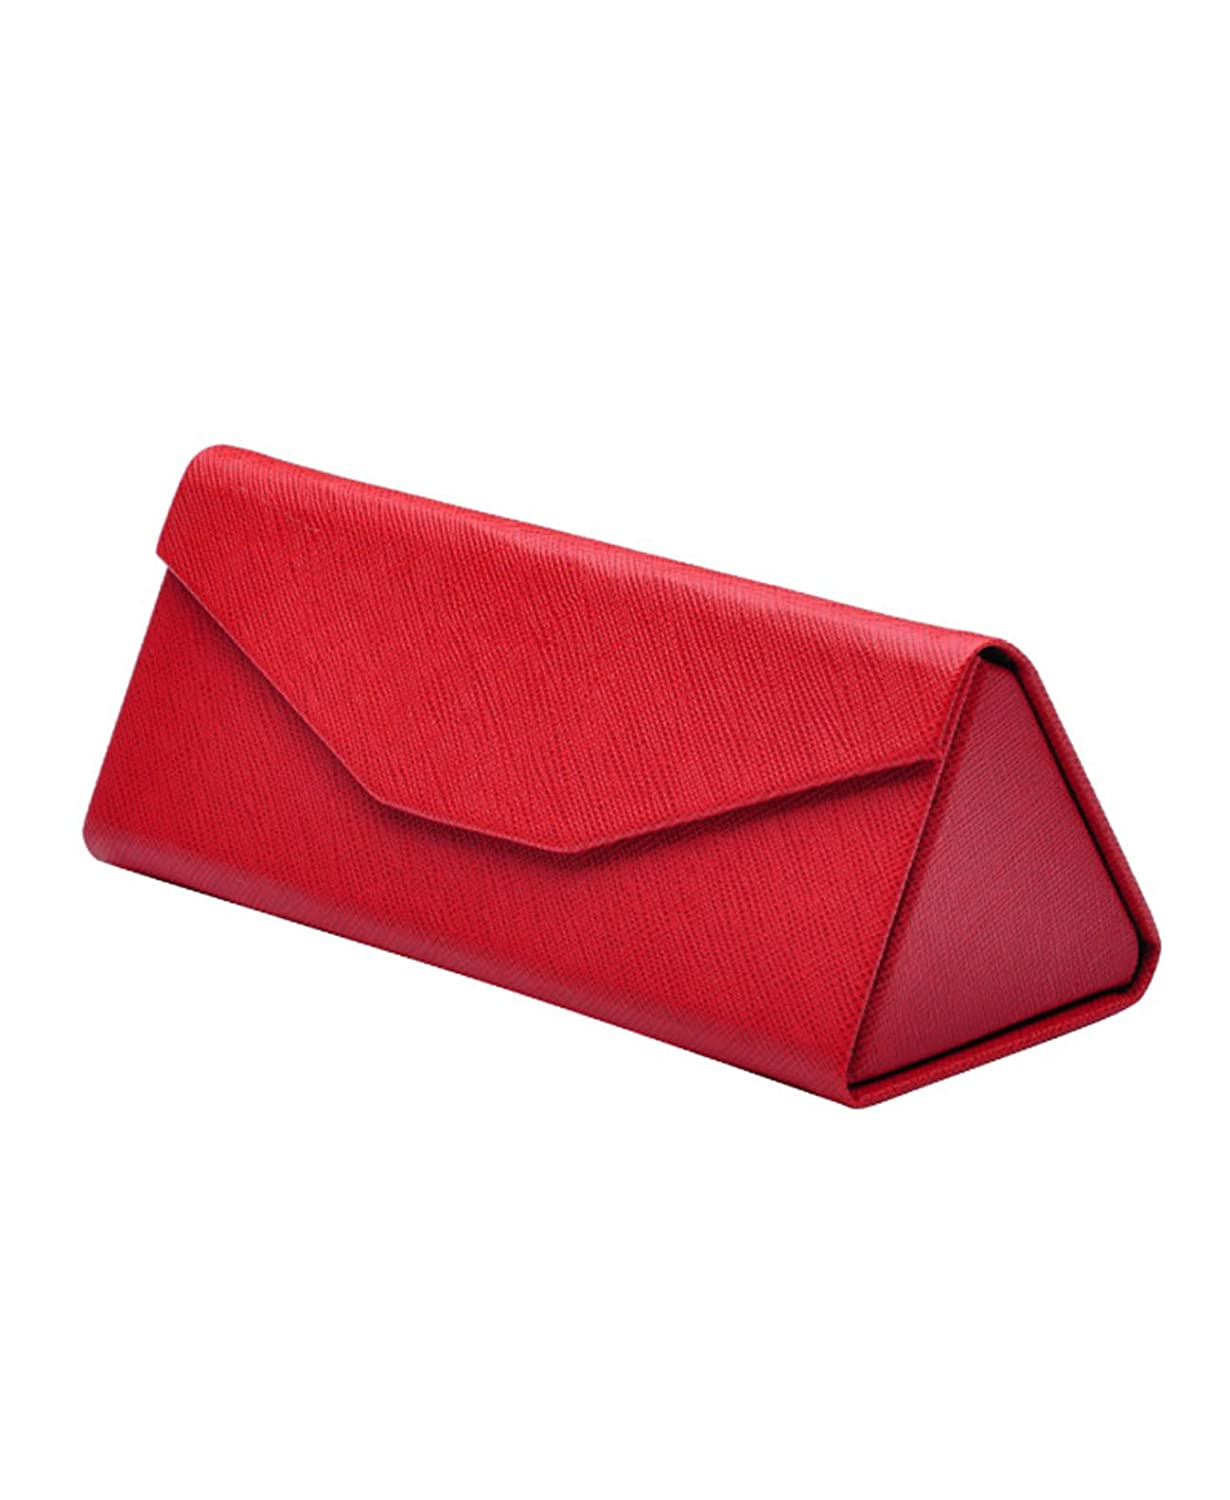 Boomly Foldable Triangle Glasses Case Sunglasses Magnetic Storage Box PU Leather Eyeglass Case Lightweight Eyewear Holder Eyewear Frame Protective Case